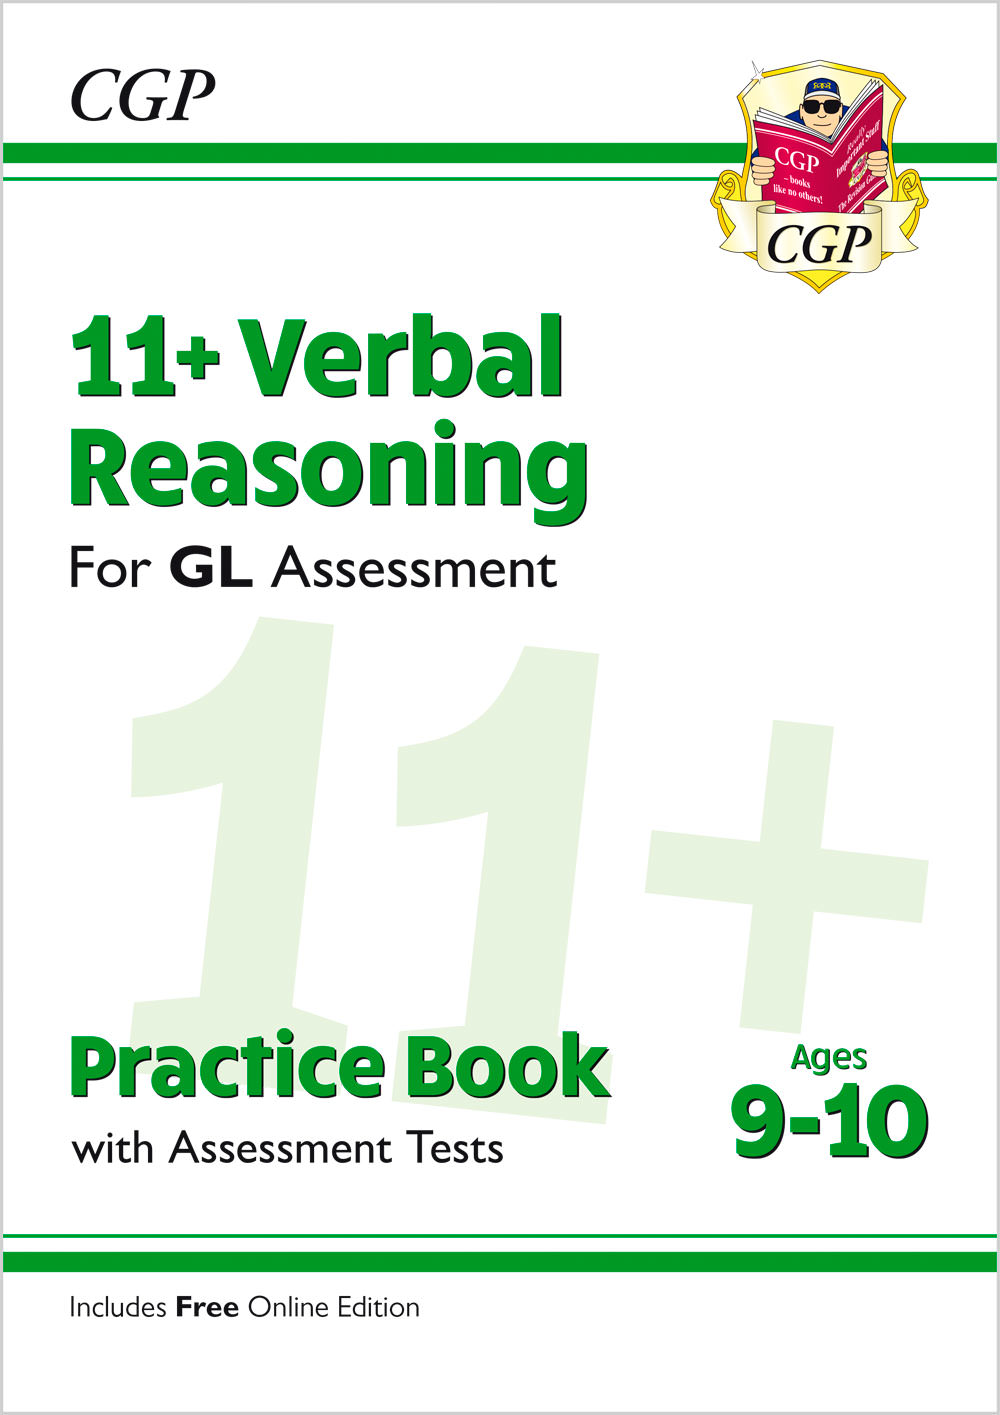 V5QE2 - New 11+ GL Verbal Reasoning Practice Book & Assessment Tests - Ages 9-10 (with Online Editio